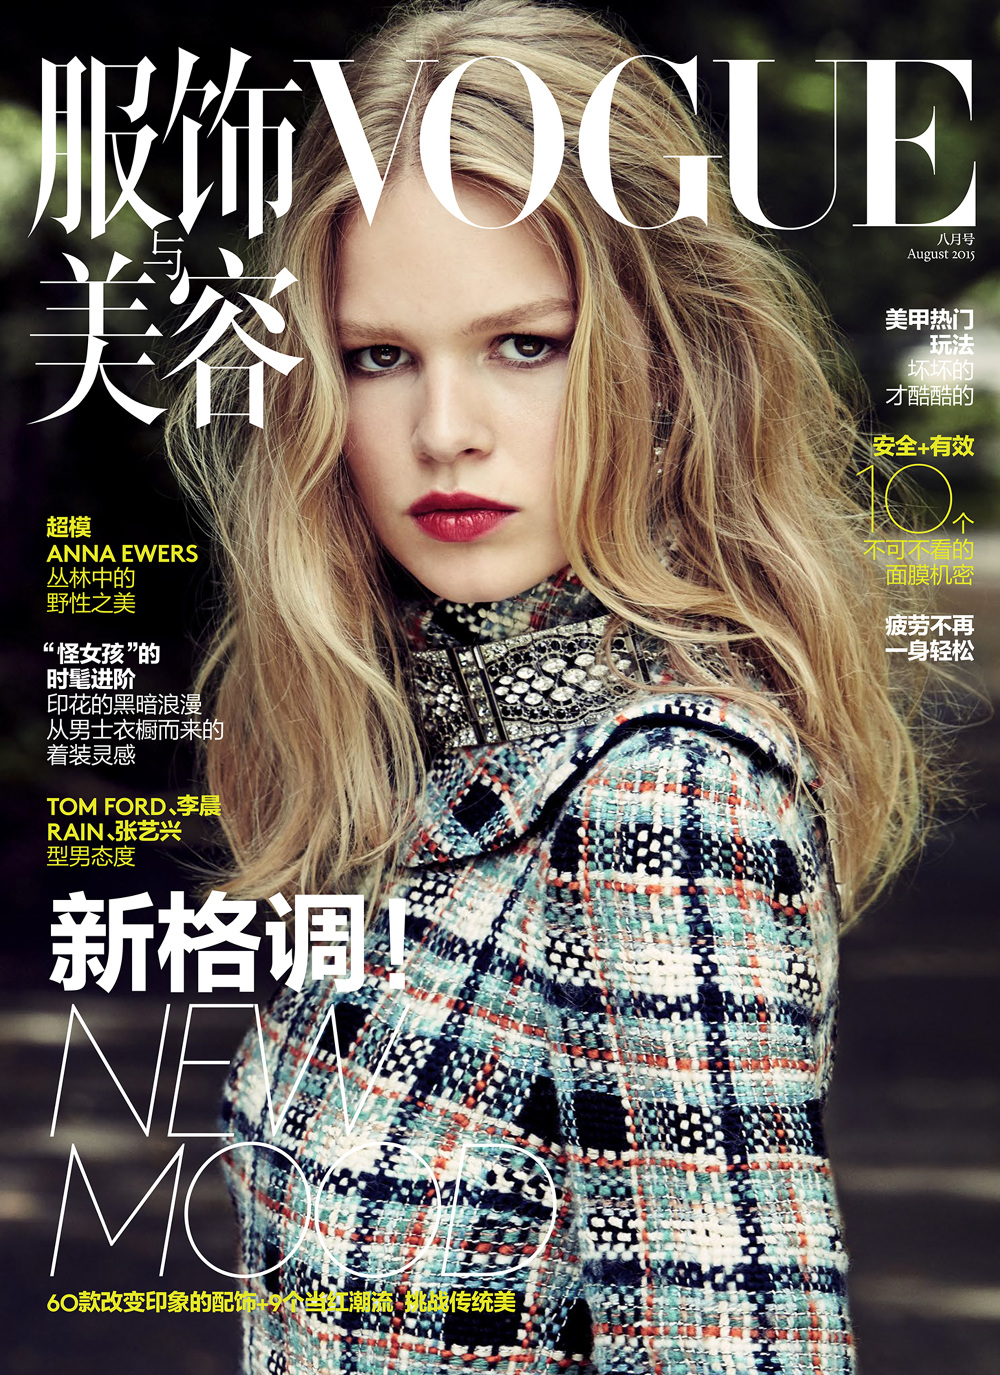 Vogue China August 2015 Photography by Patrick Demarchelier